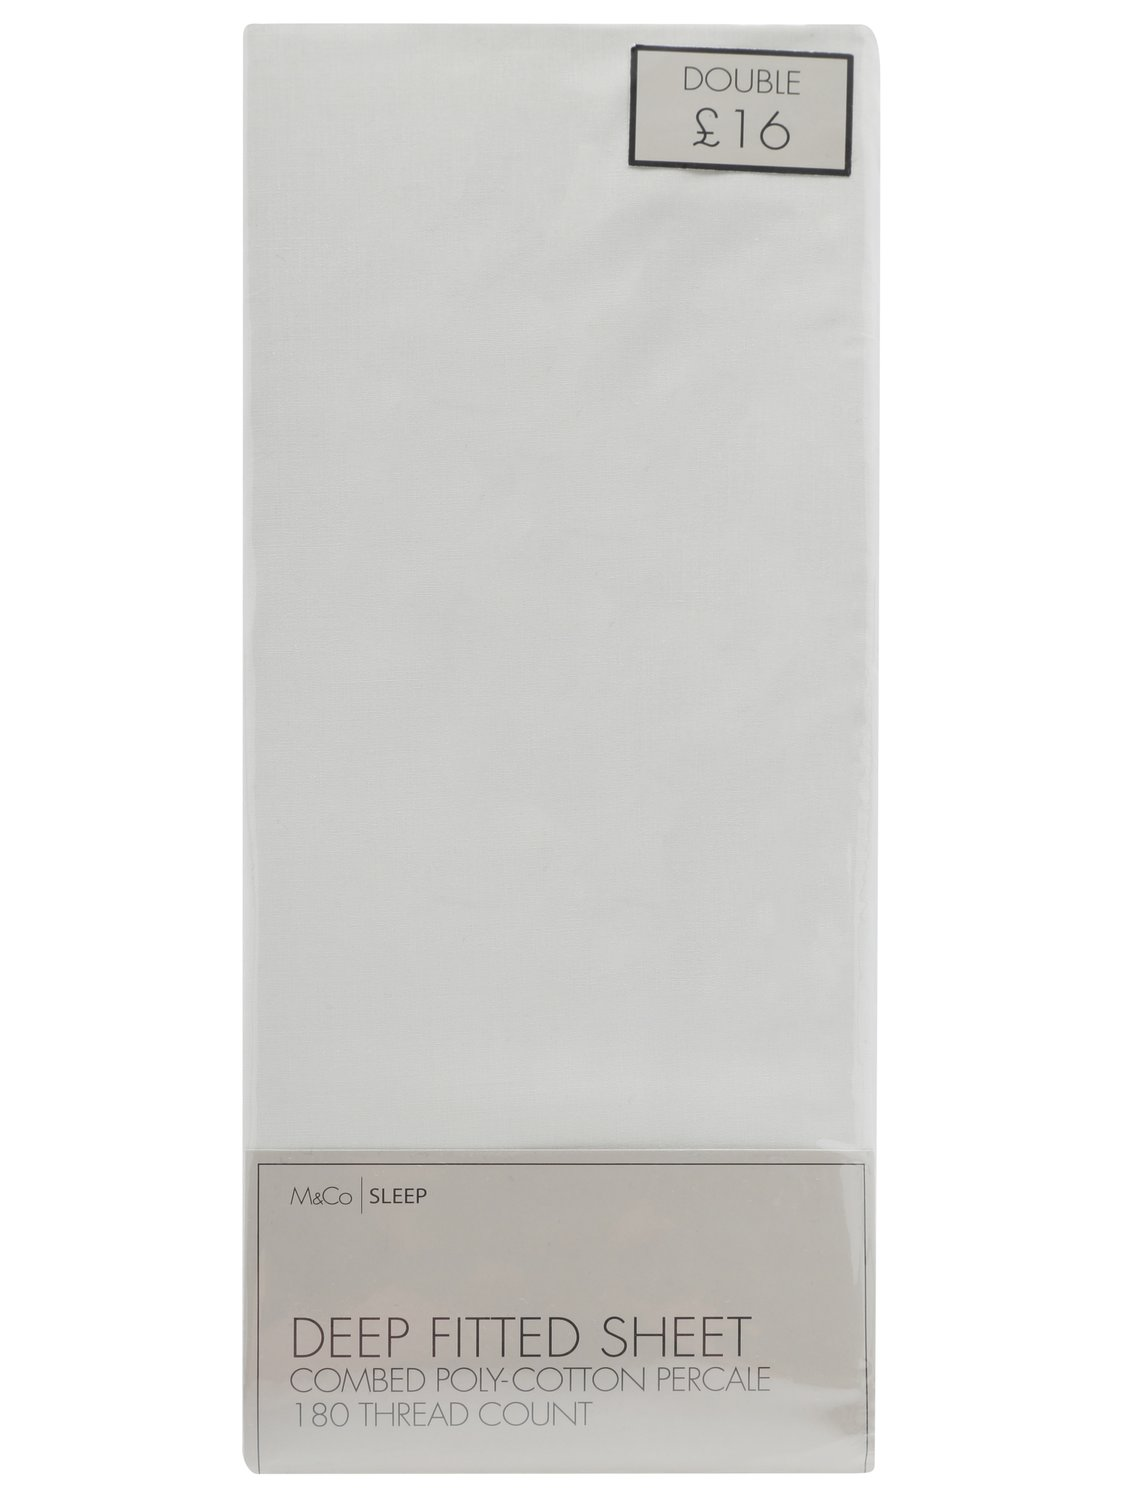 180 thread count fitted sheet for deeper mattresses - depth 15 inches  - cream